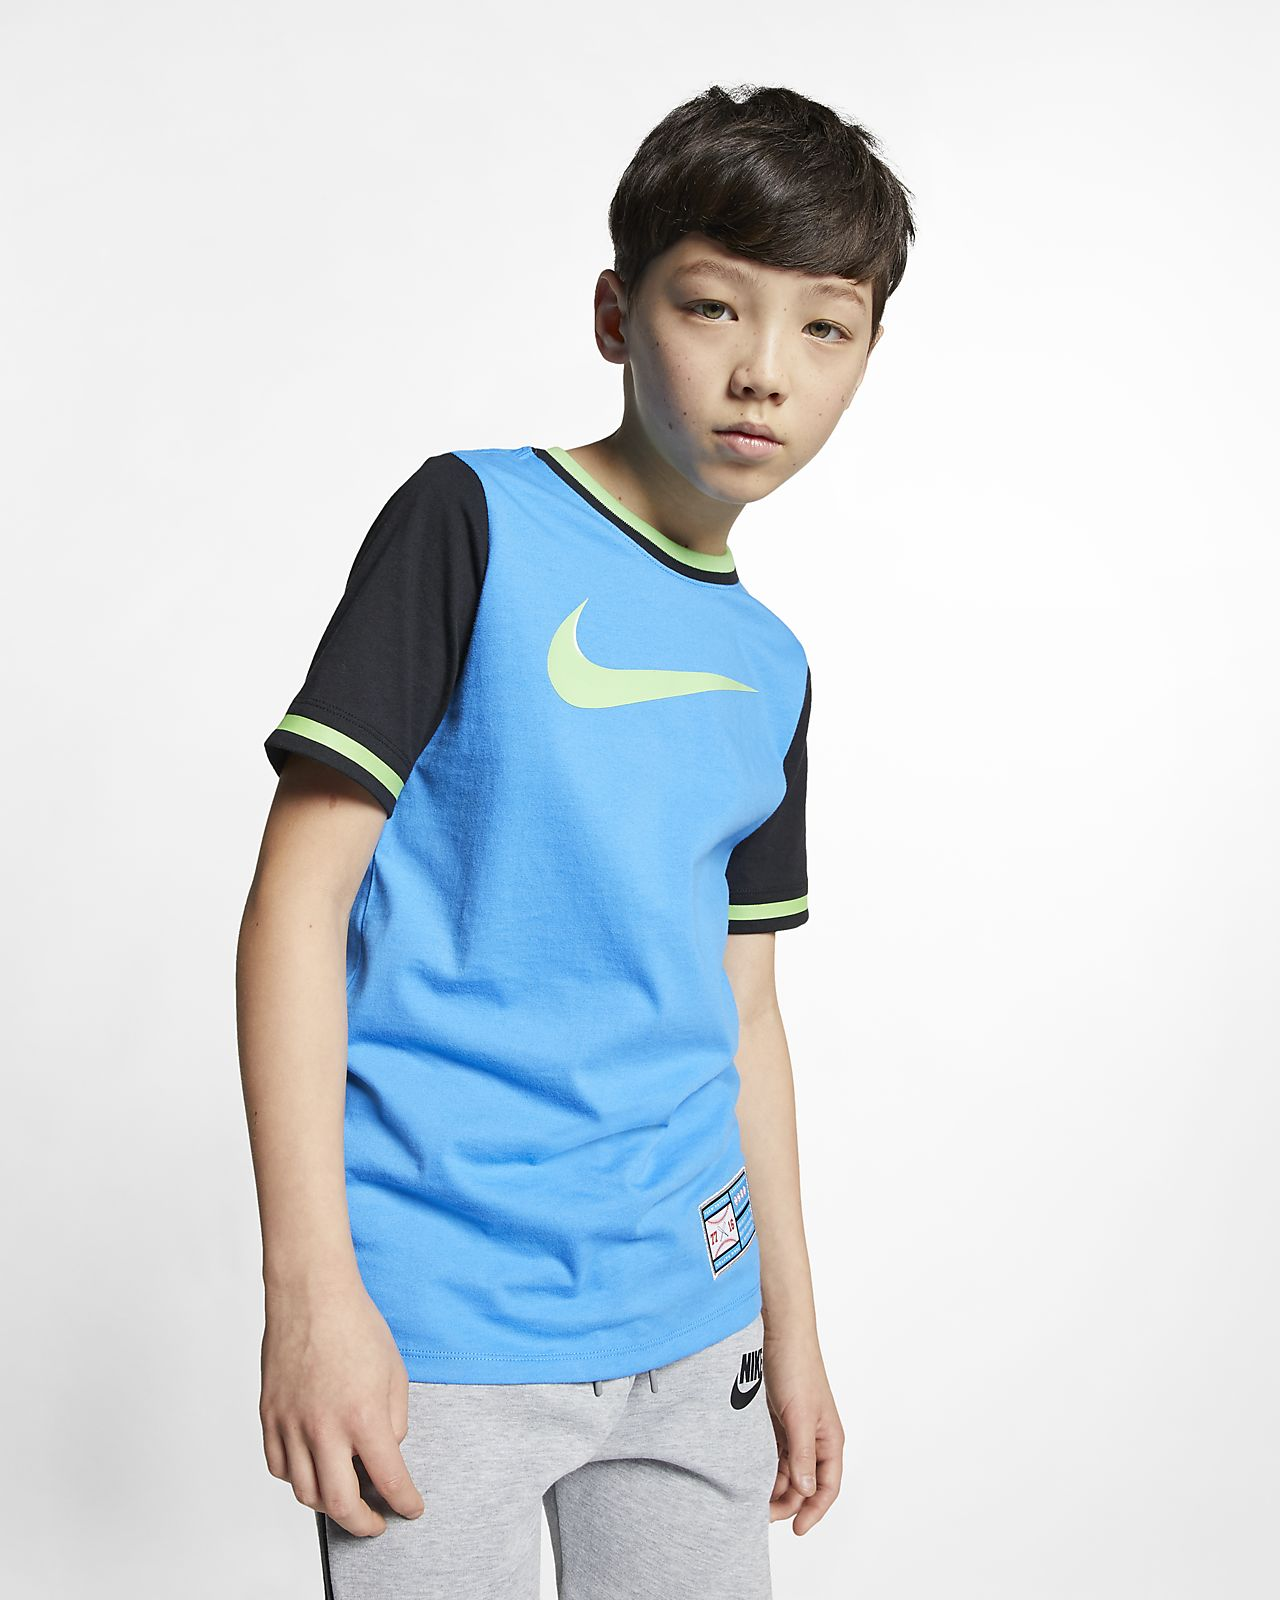 Payton's Nike (Doernbecher Freestyle) Big Kids' (Boys') T-Shirt